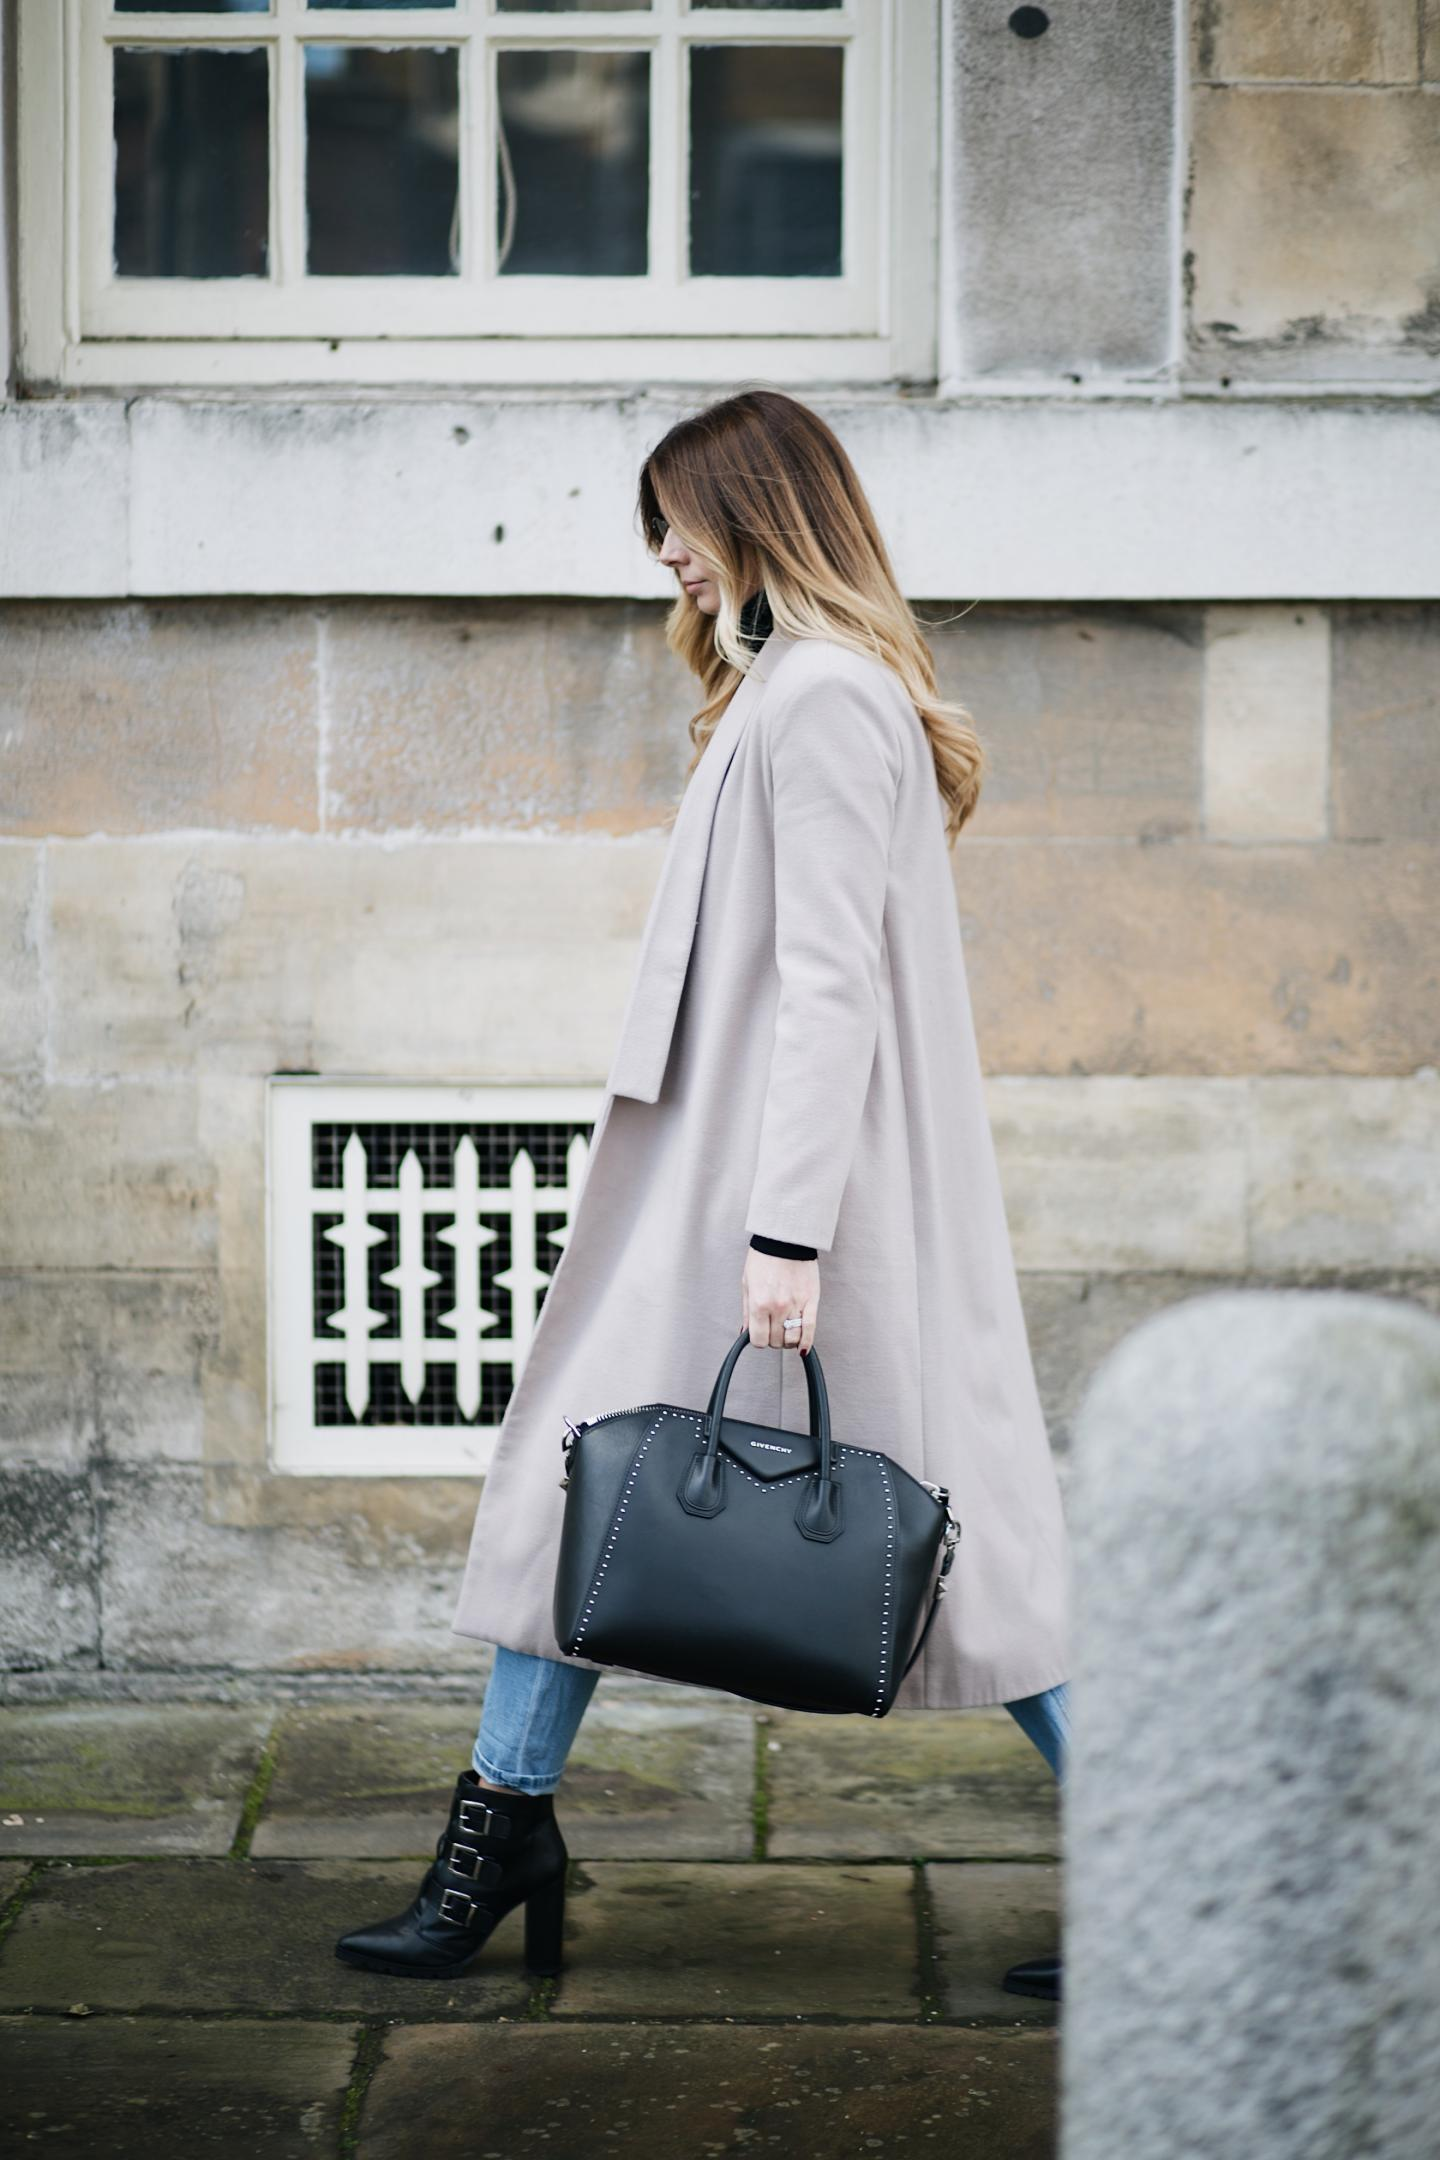 Emma Hill wears nude coat, studded medium Givenchy Antigona bag, bleach wash boyfriend jeans, black buckle ankle boots, winter style, winter outfit ideas